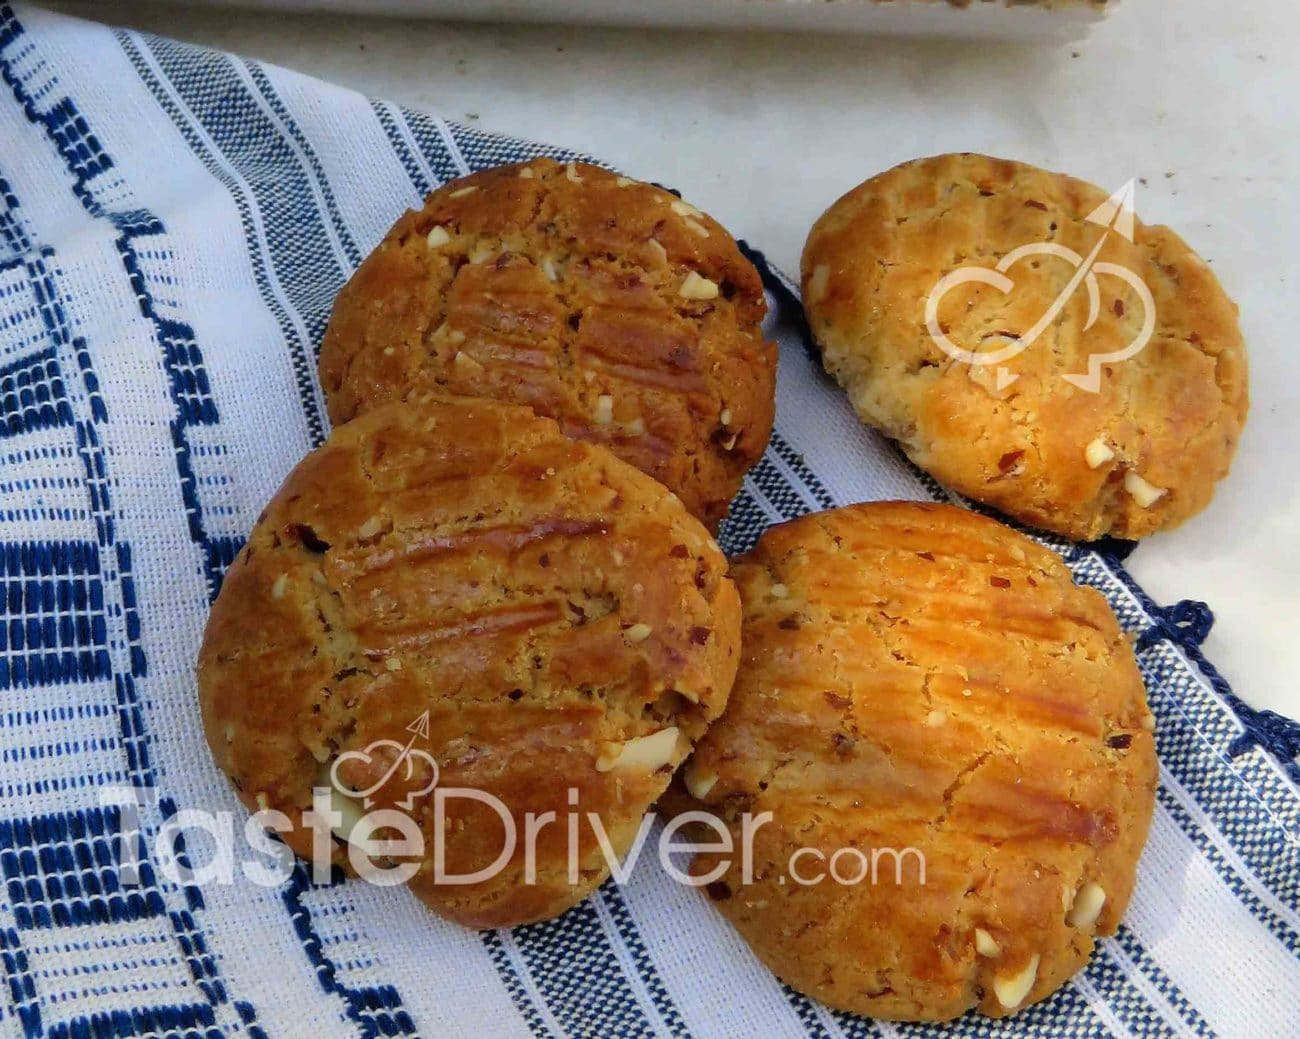 Almond biscuits with stevia